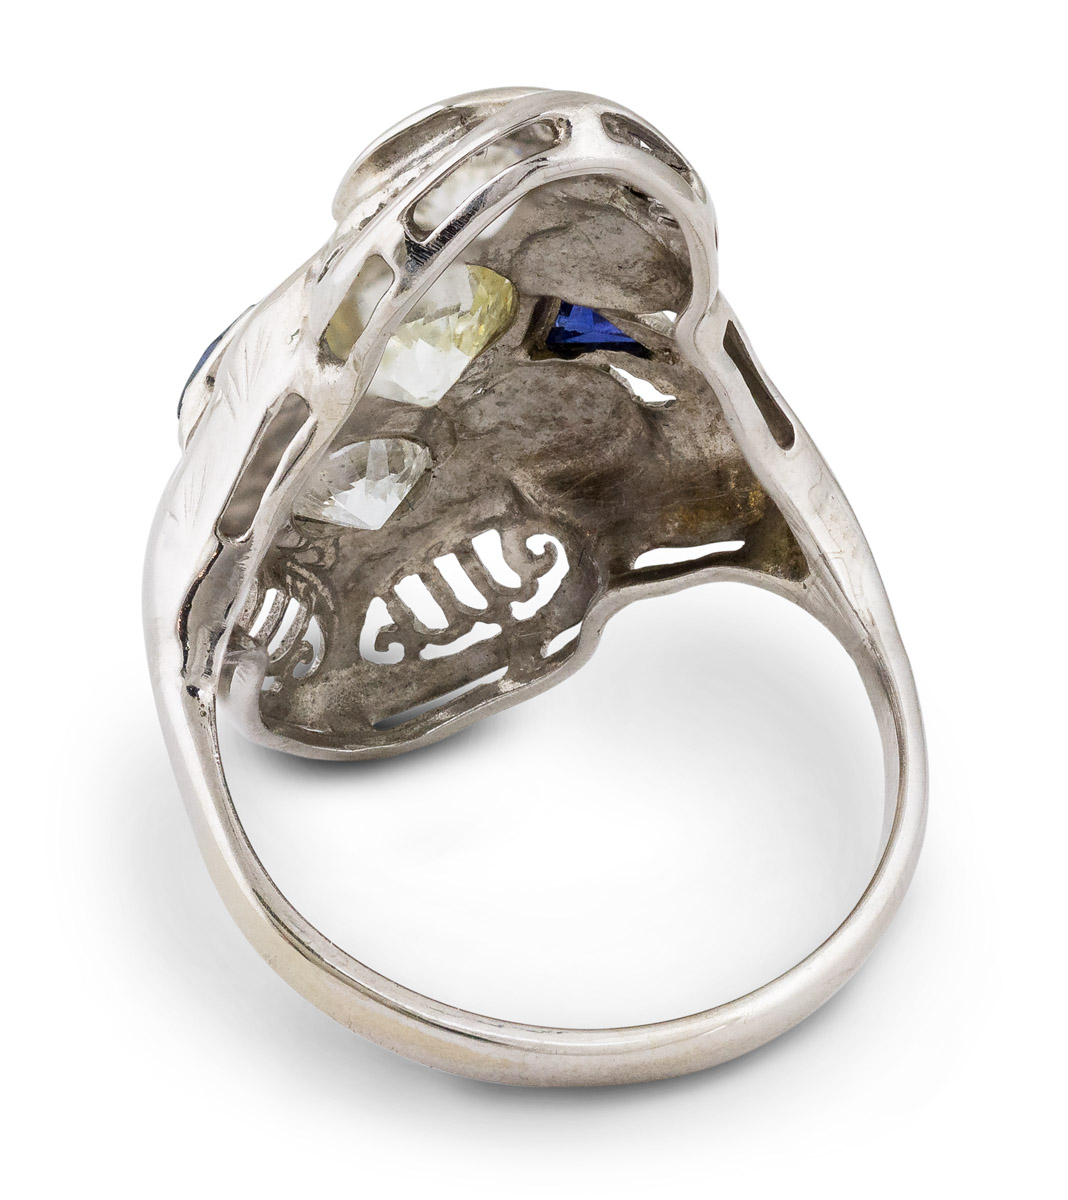 Vintage Filigree Diamond and Sapphire Ring - Back